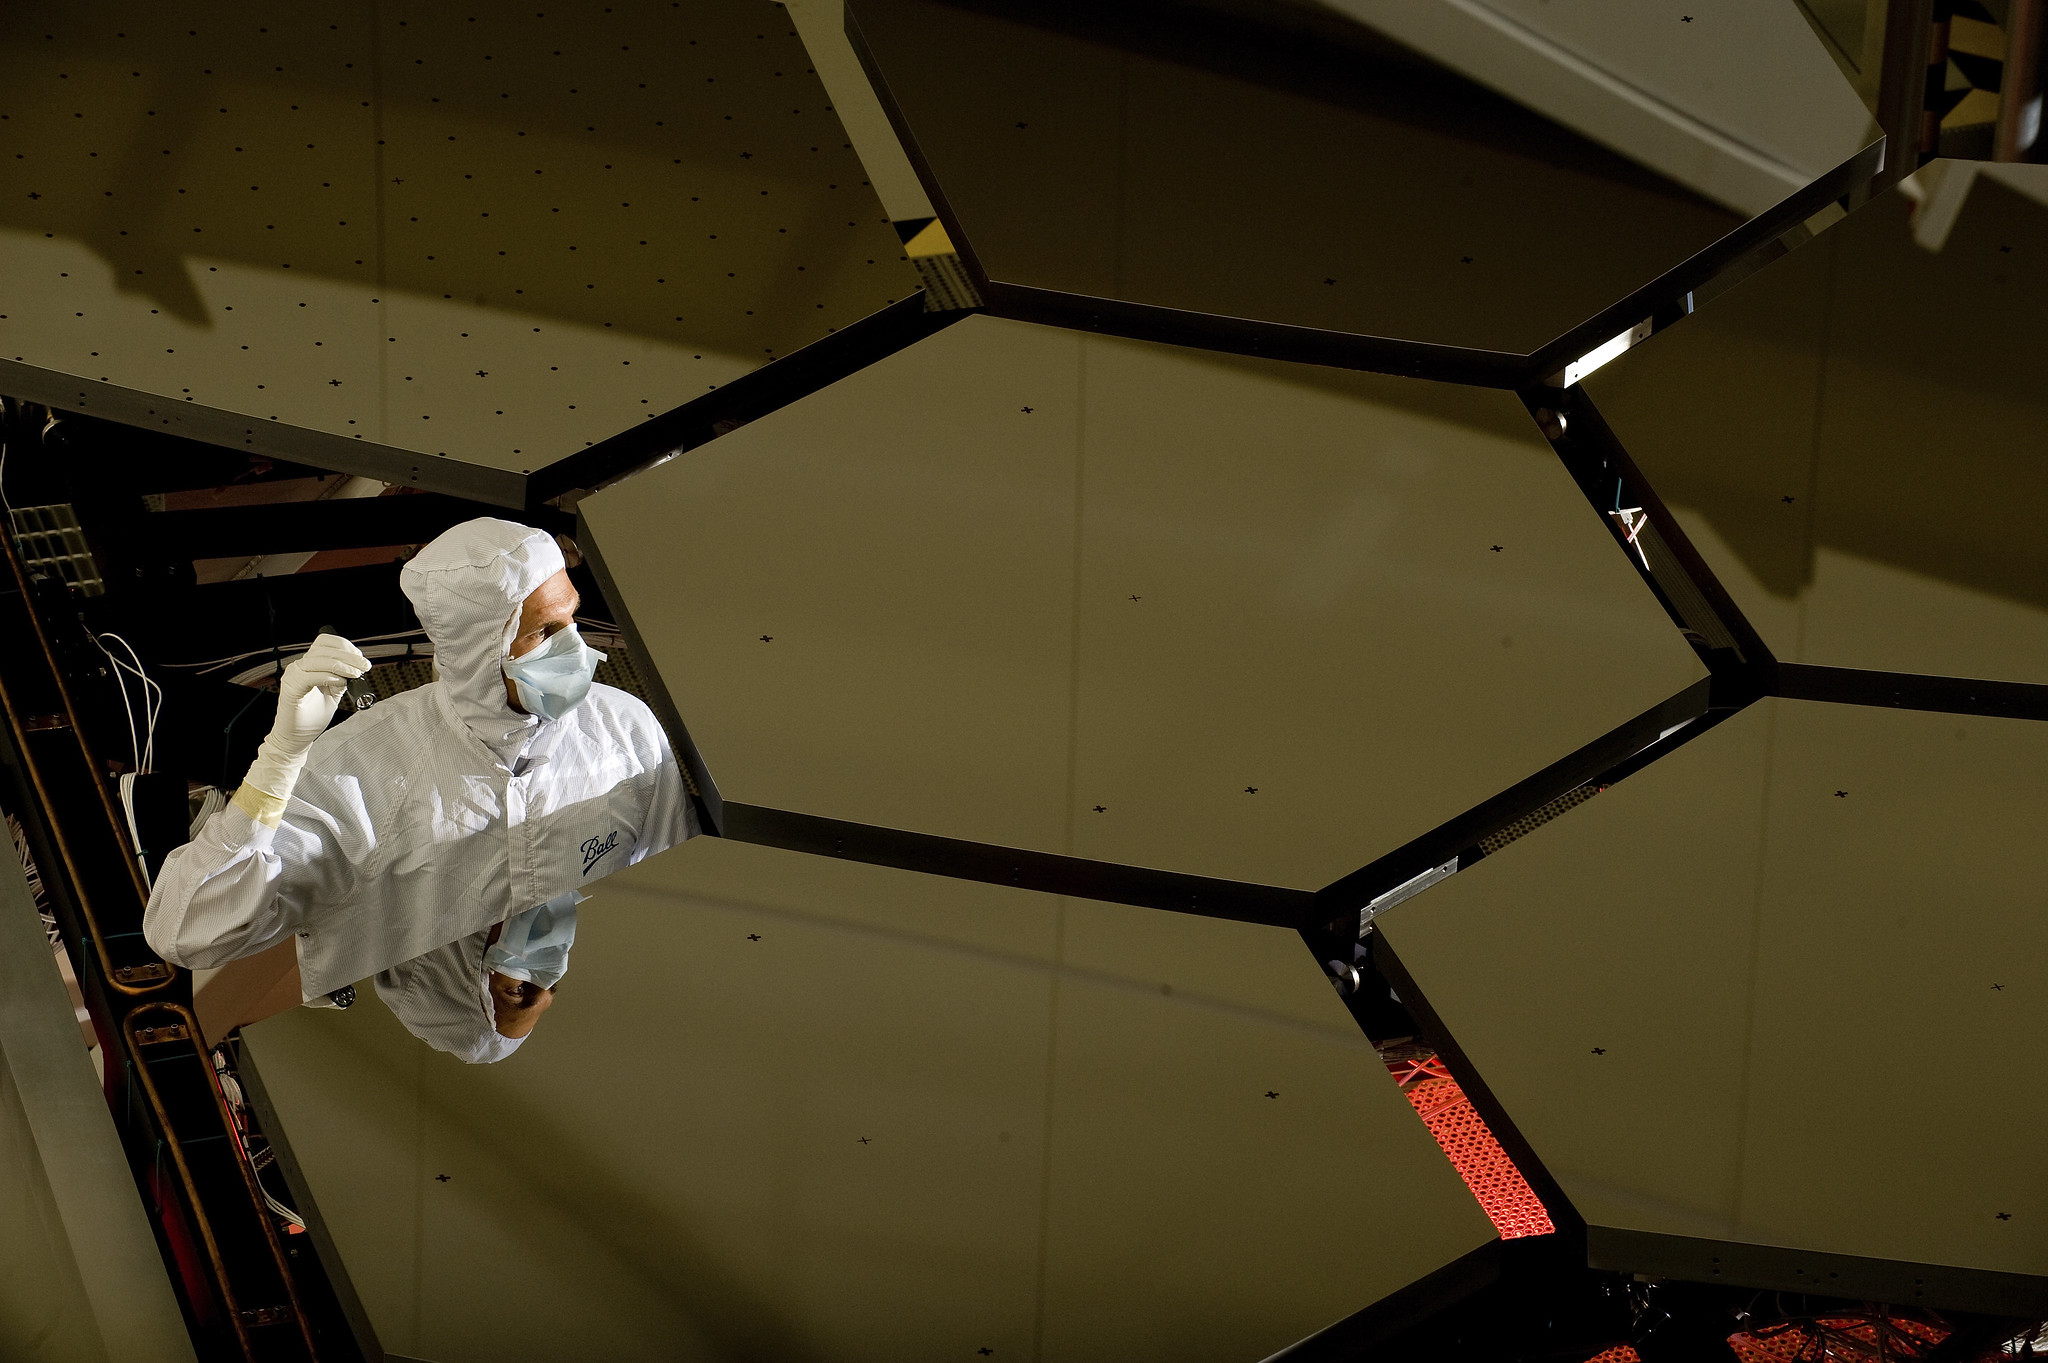 A technician in a white smock stands up in a gap between several large hexagonal mirrors forming a honeycomb shape.